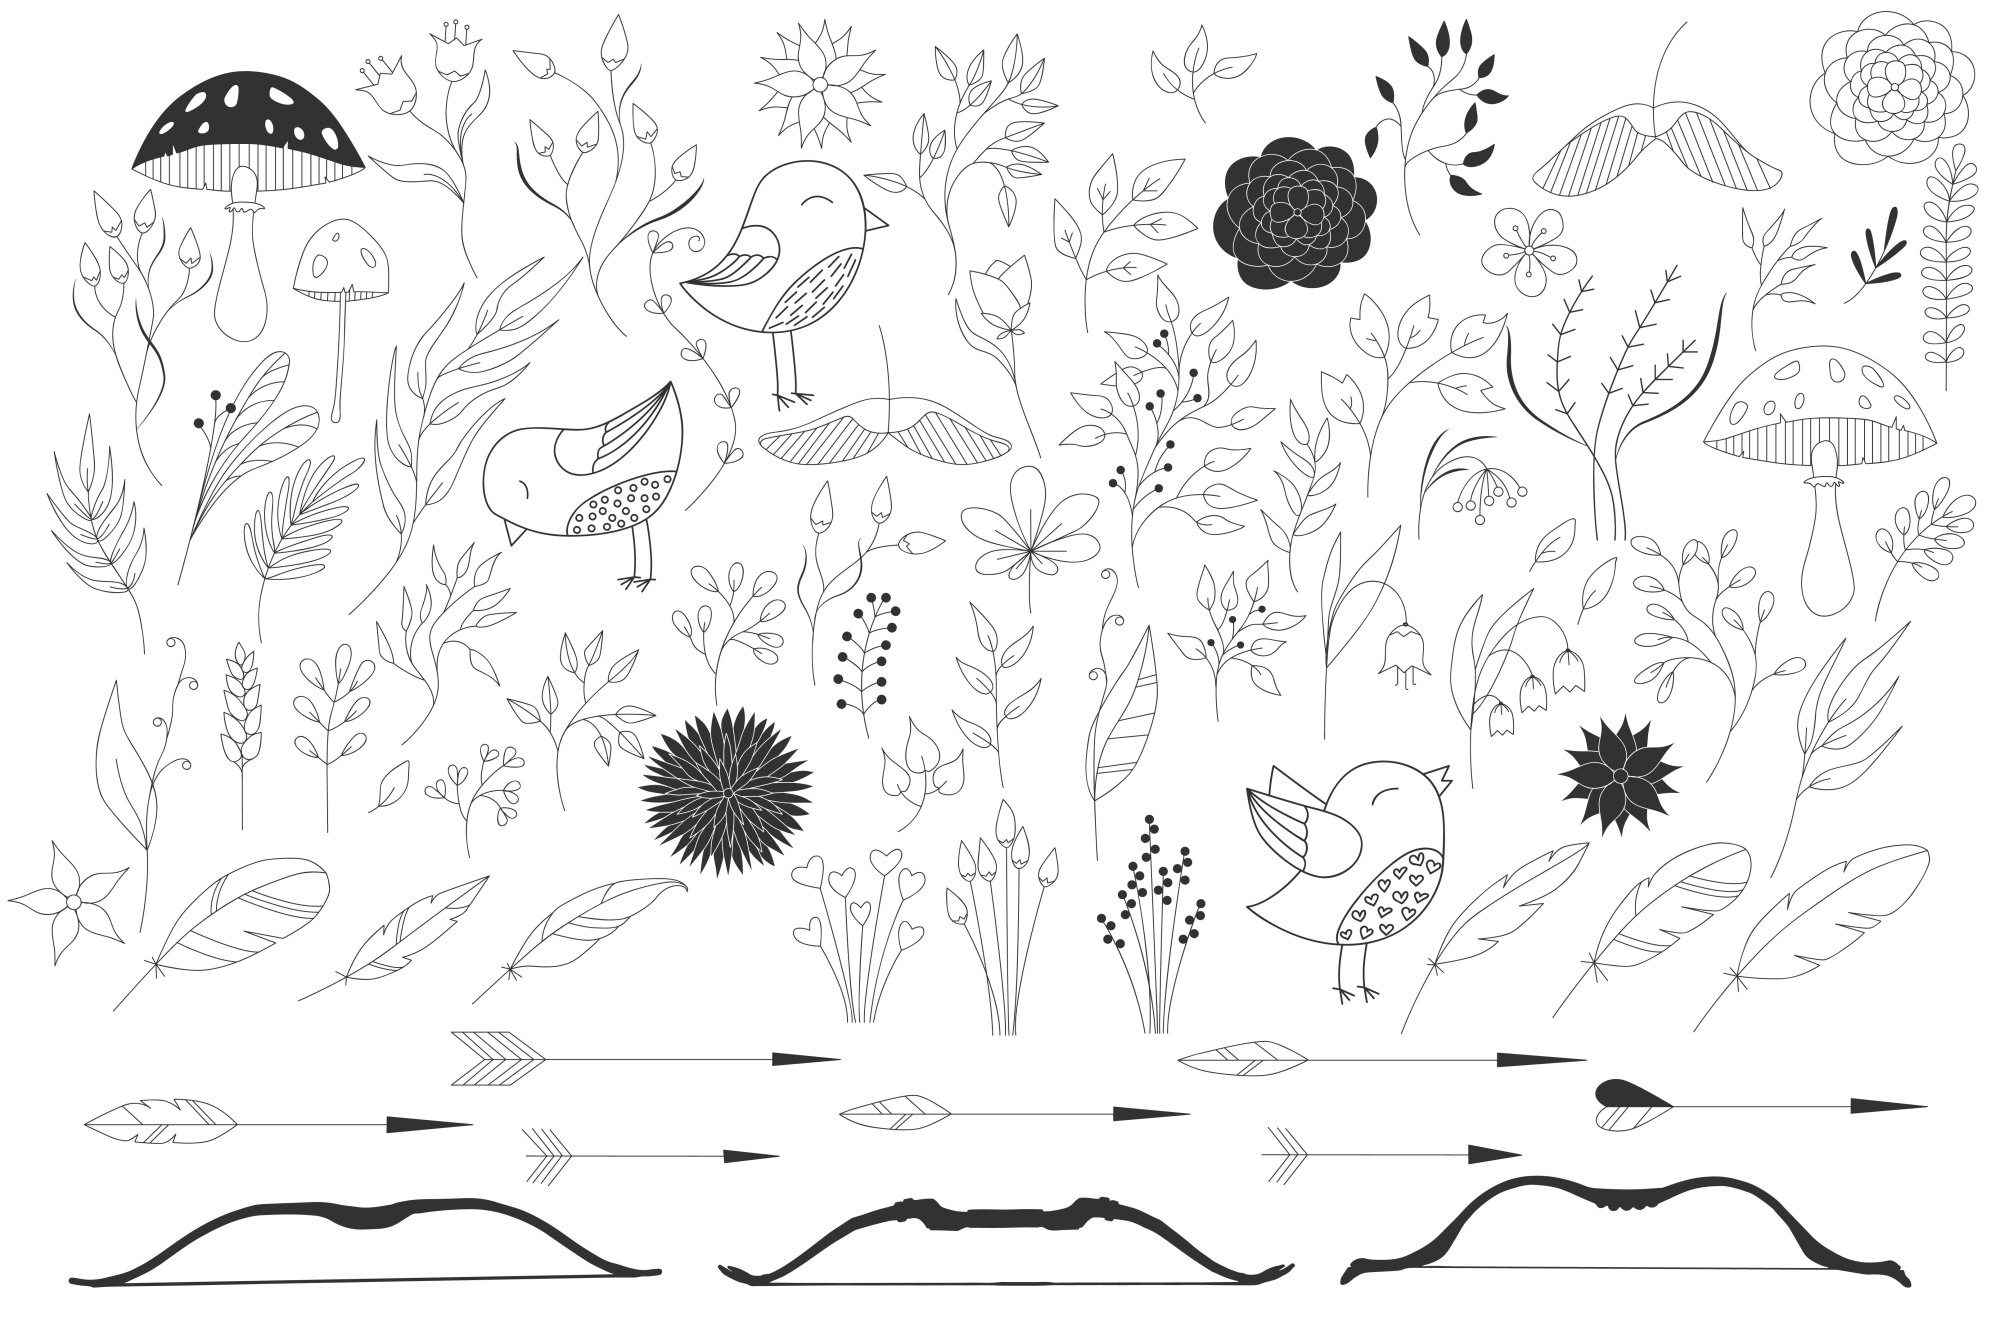 450 handsketched elements. Nature mega pack example image 20